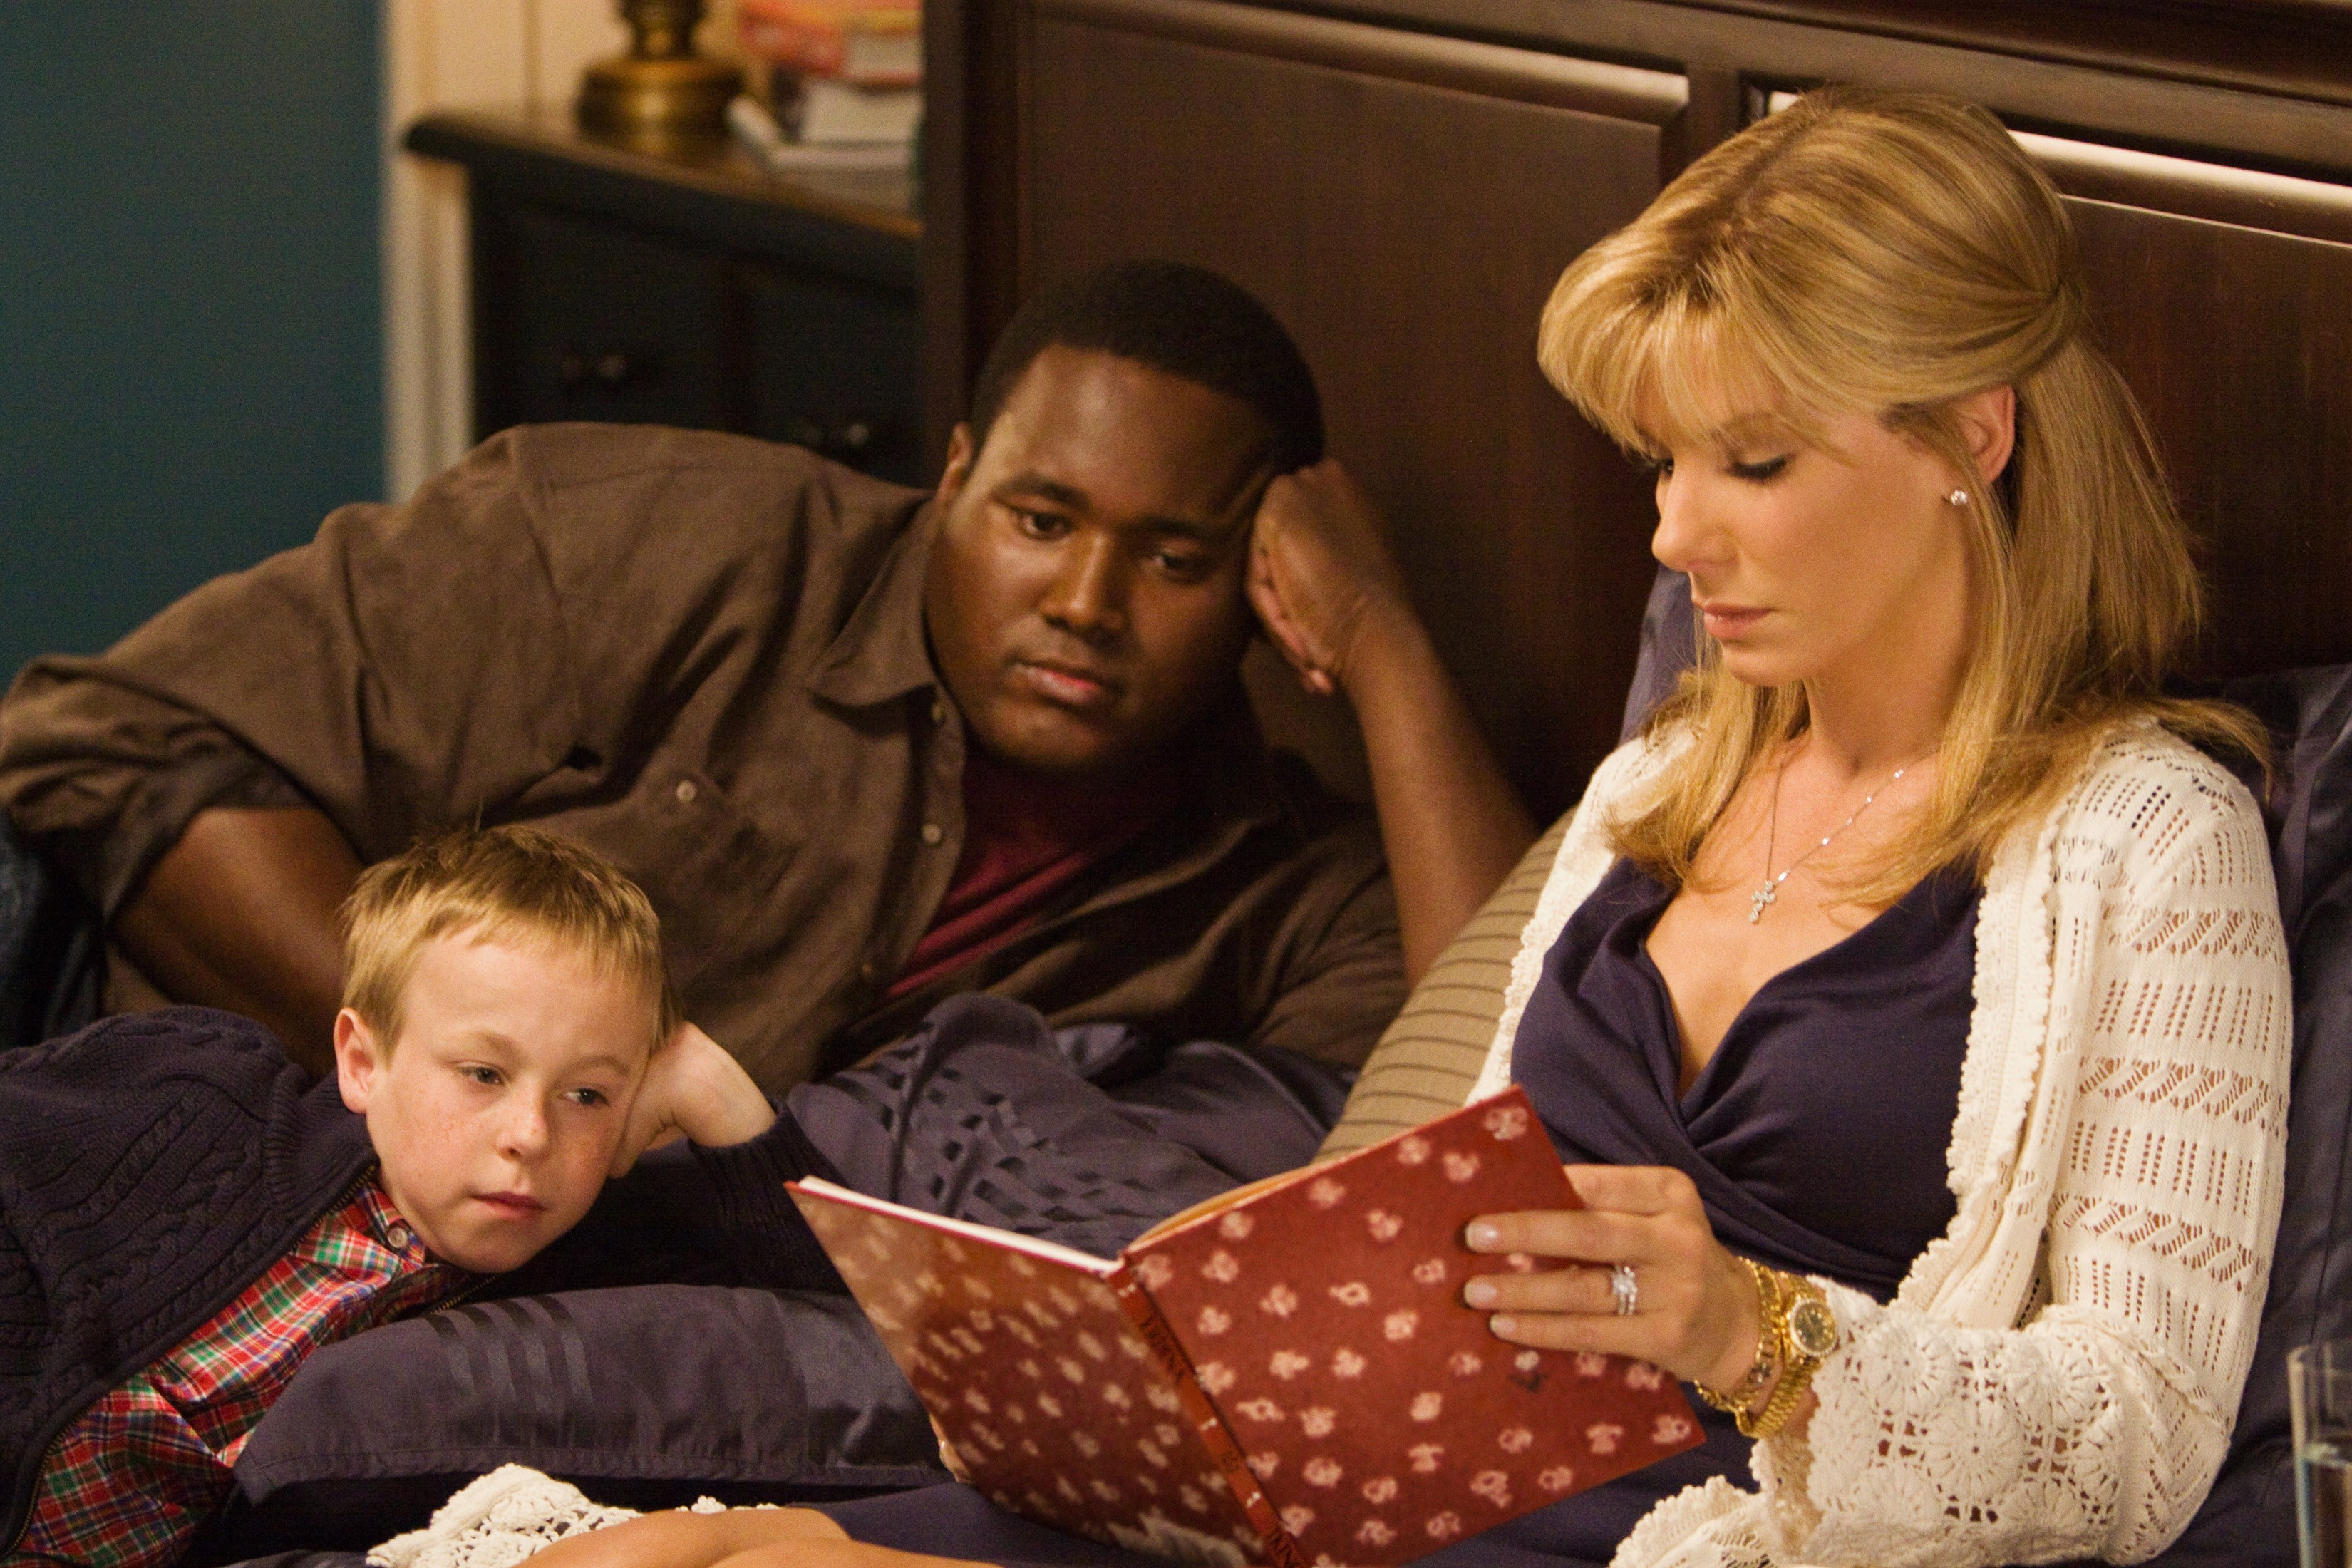 'The Blind Side' is uplifting and heartwarming